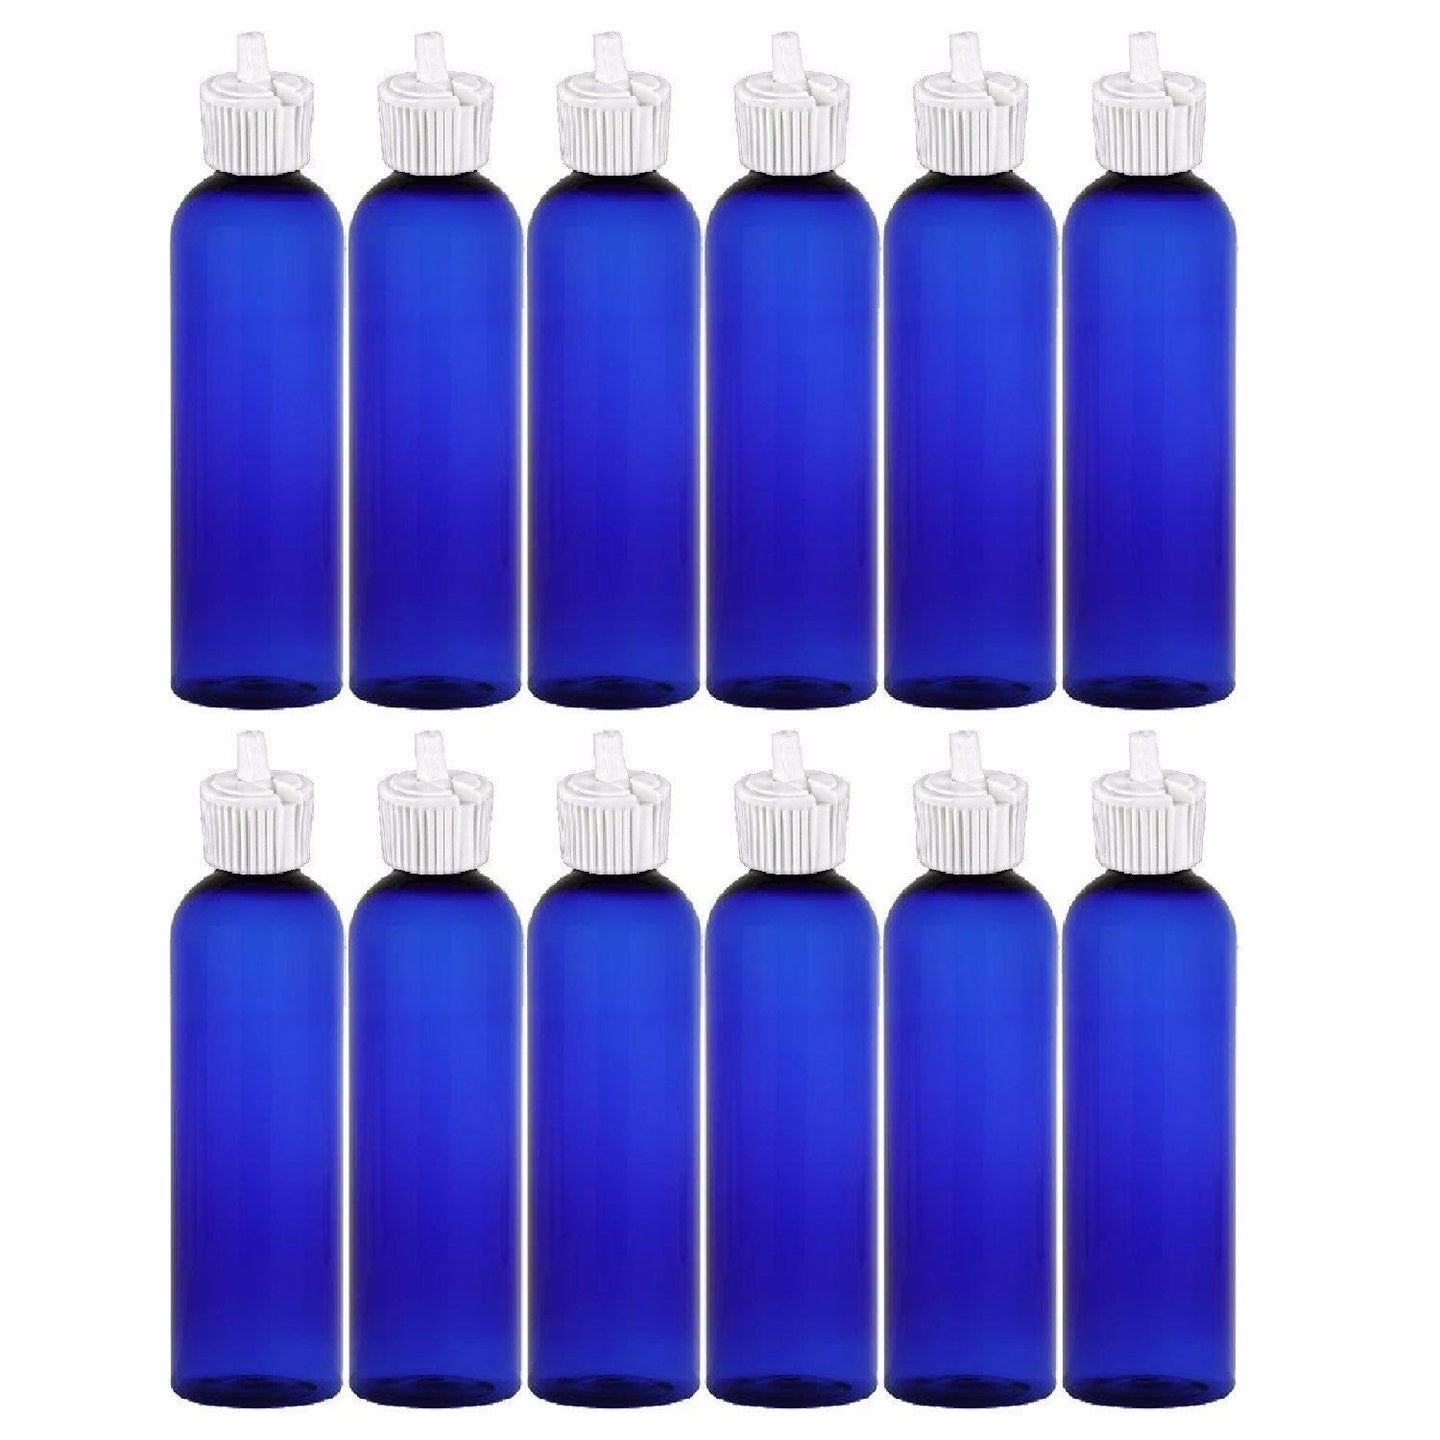 MoYo Natural Labs 4 oz Squirt Bottles, Squeezable Empty Travel Containers, BPA Free PET Plastic for Essential Oils and Liquids, Toiletry/Cosmetic Bottles (Neck 20-410) (Pack of 12, Blue)